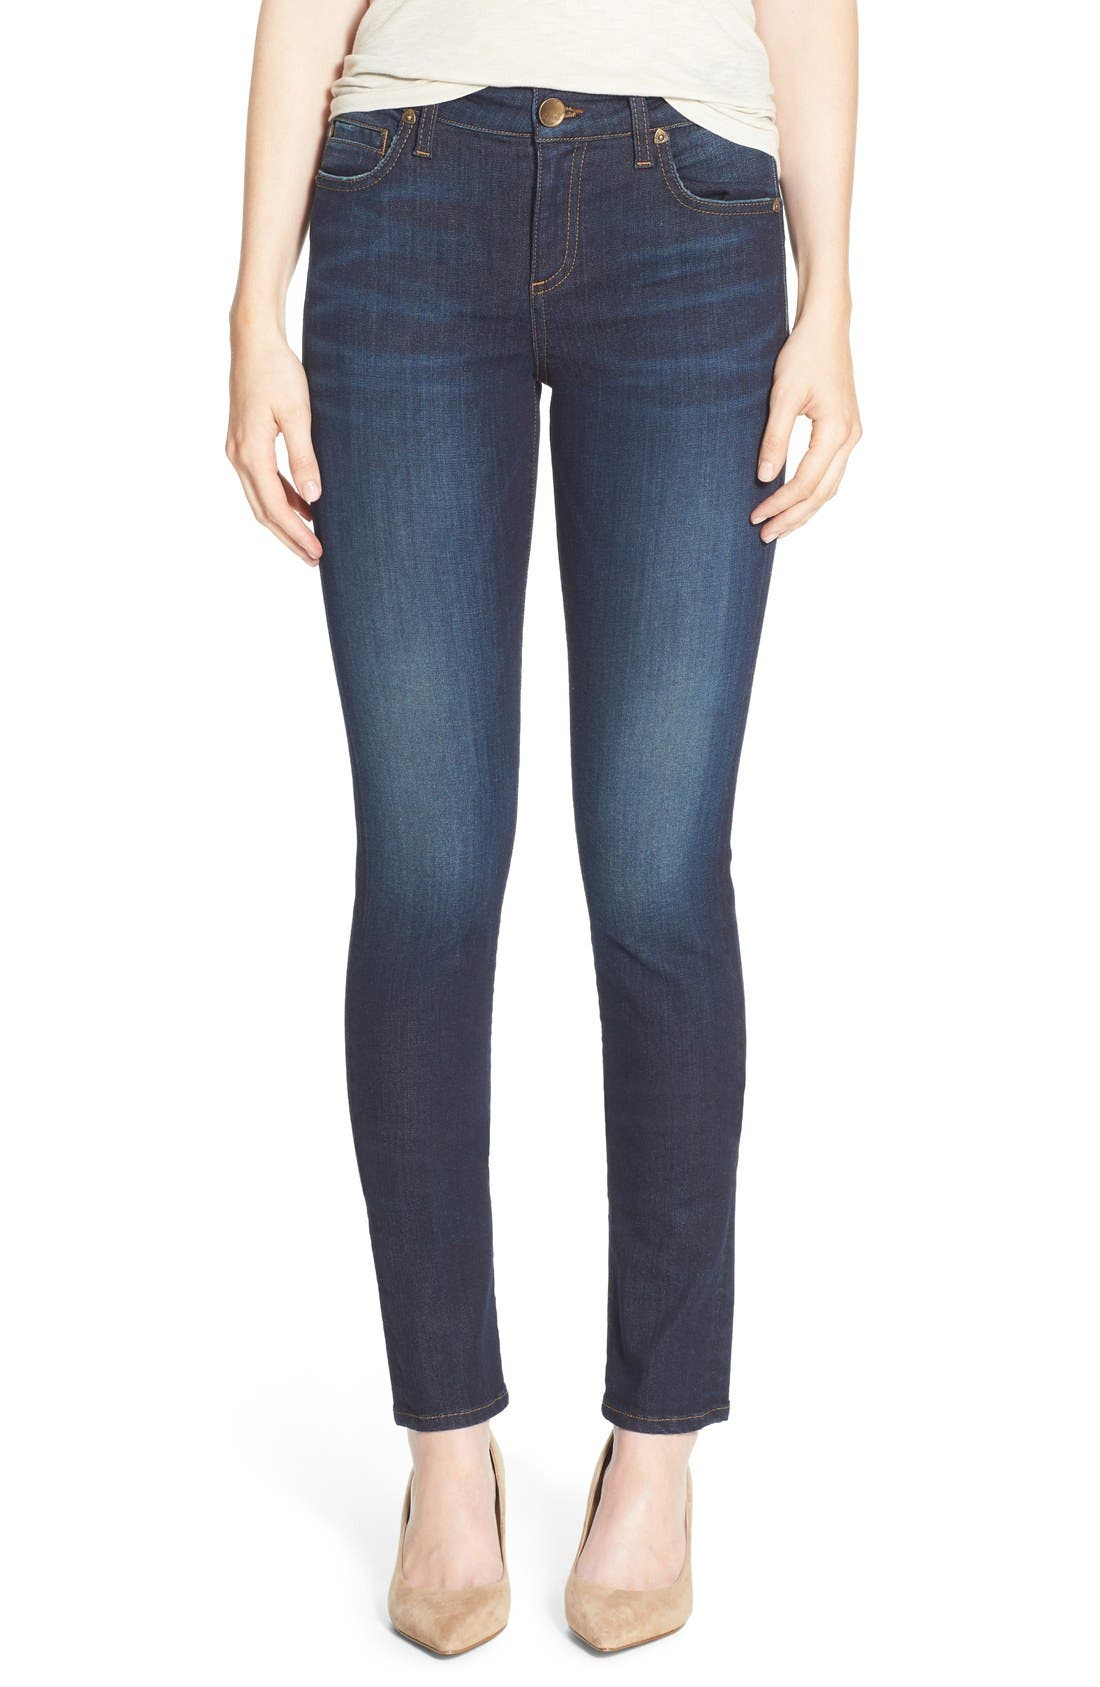 'Diana' Stretch Skinny Jeans,                             Main thumbnail 1, color,                             420